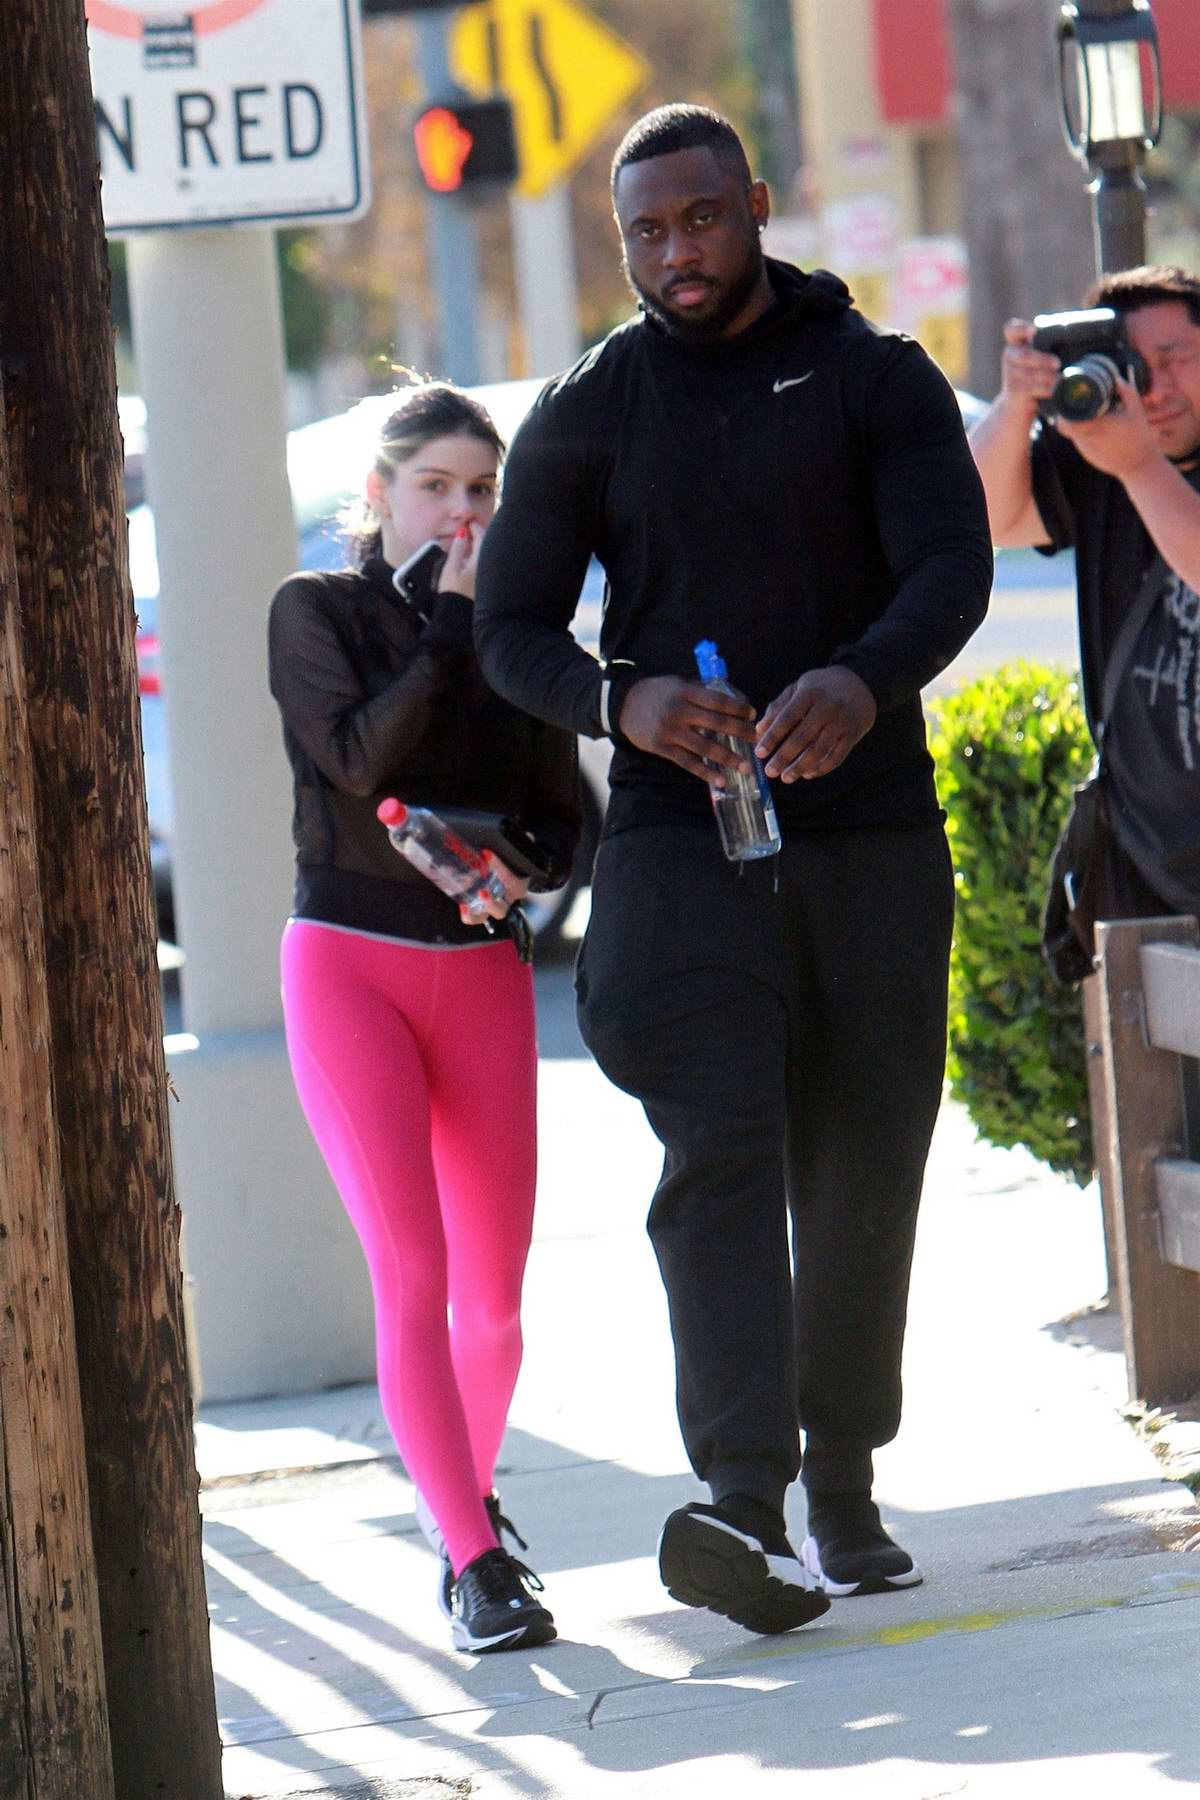 49044d69b77b71 ariel winter sports hot pink leggings and a sheer top for a trip to the  studio in los angeles-100419_12